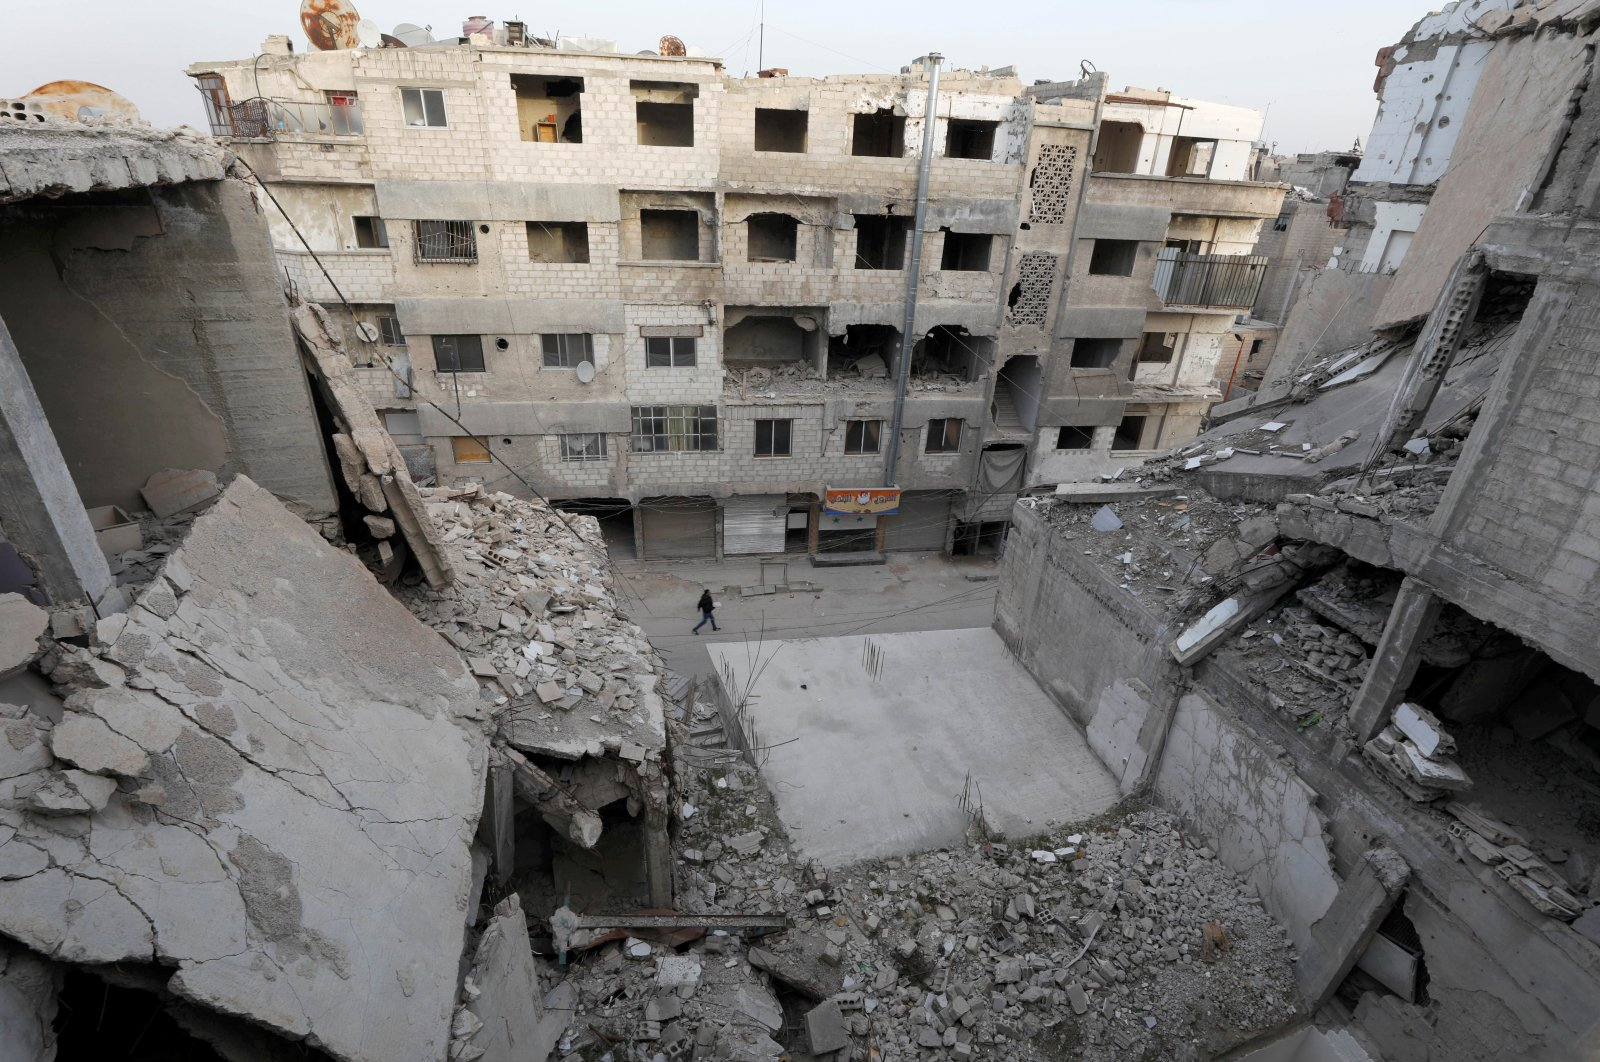 A man walks pasts damaged buildings in Douma, in the eastern suburbs of Damascus, Syria, March 9, 2021. (REUTERS Photo)